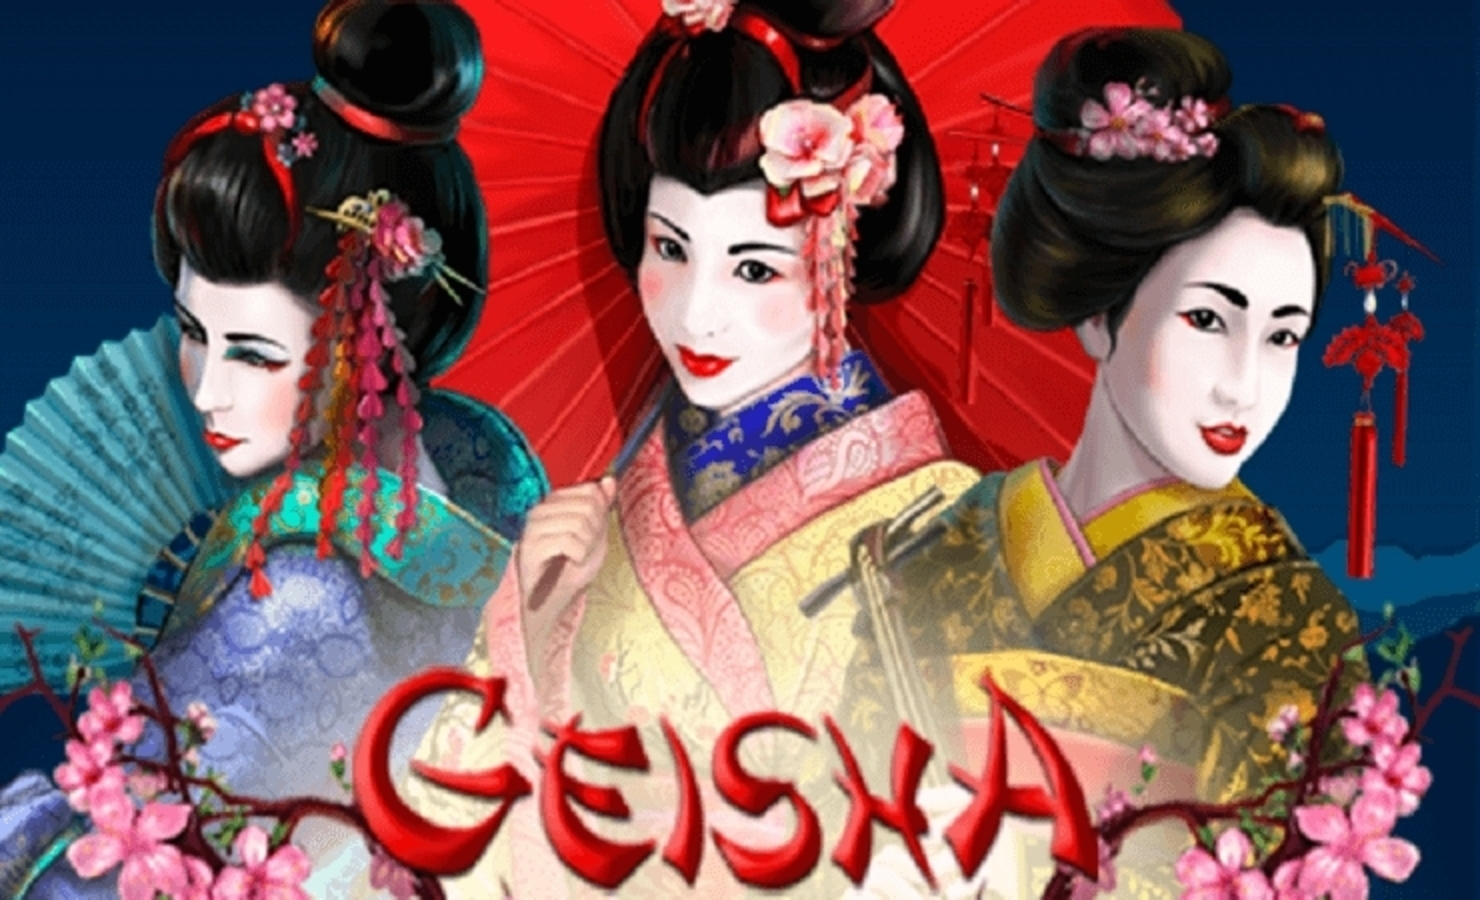 The Geisha Online Slot Demo Game by Endorphina